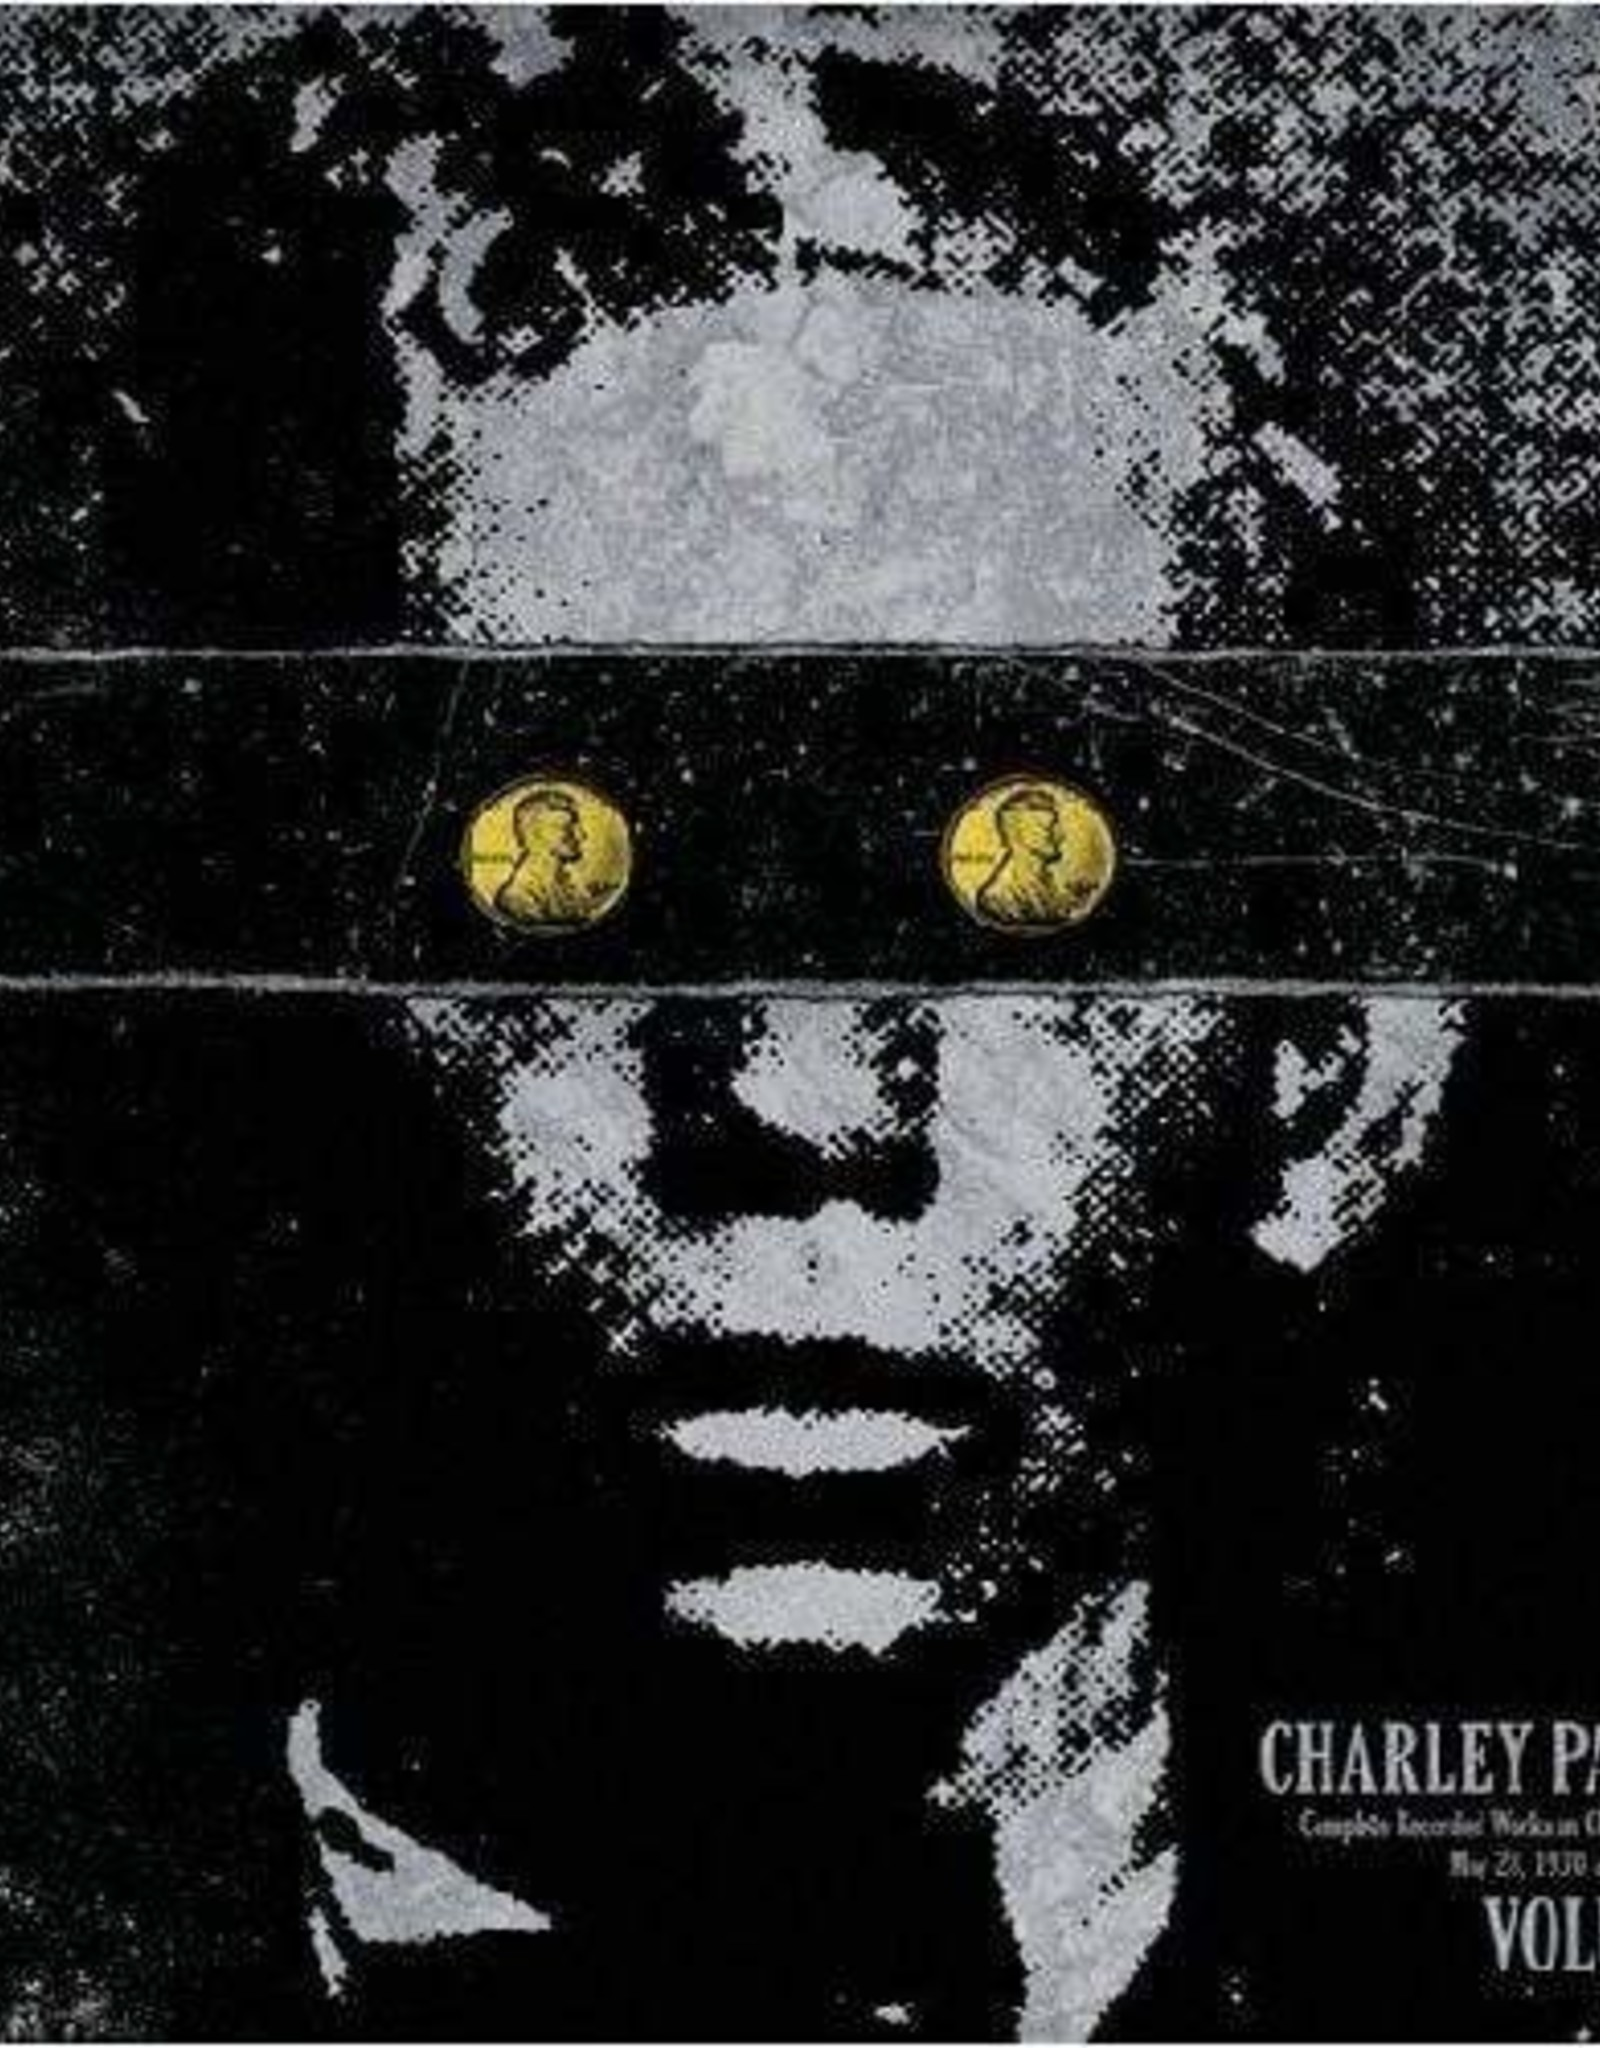 """Charley Patton - The Complete Recorded Works In Chronological Order Volume 4 (12"""" Vinyl)"""